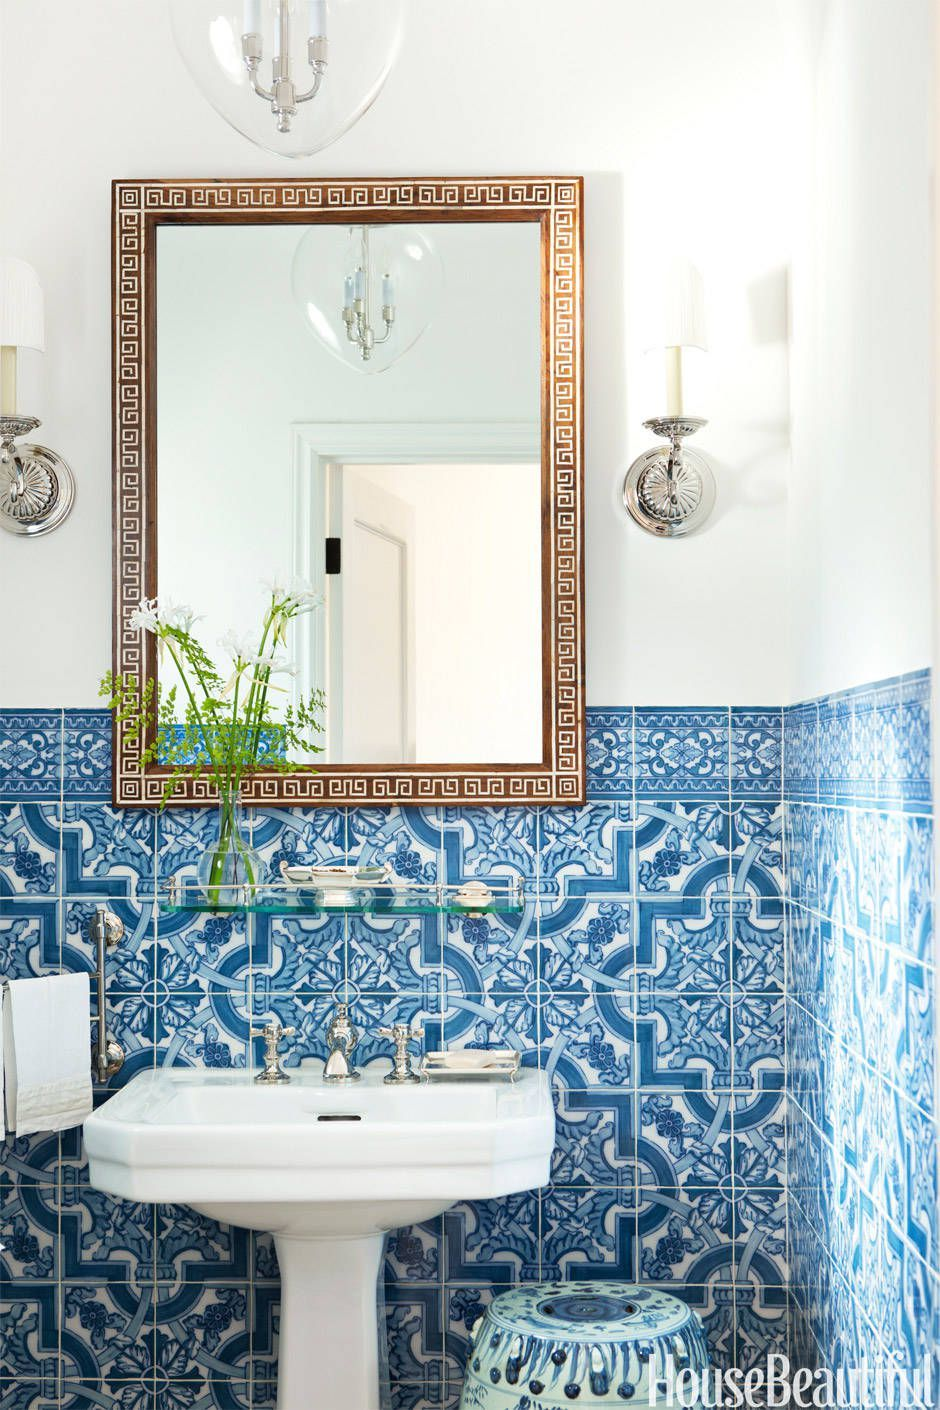 40 Chic Bathroom Tile Ideas You Need To Try Bathroom Tile Designs Mark Sikes Blue Tiles